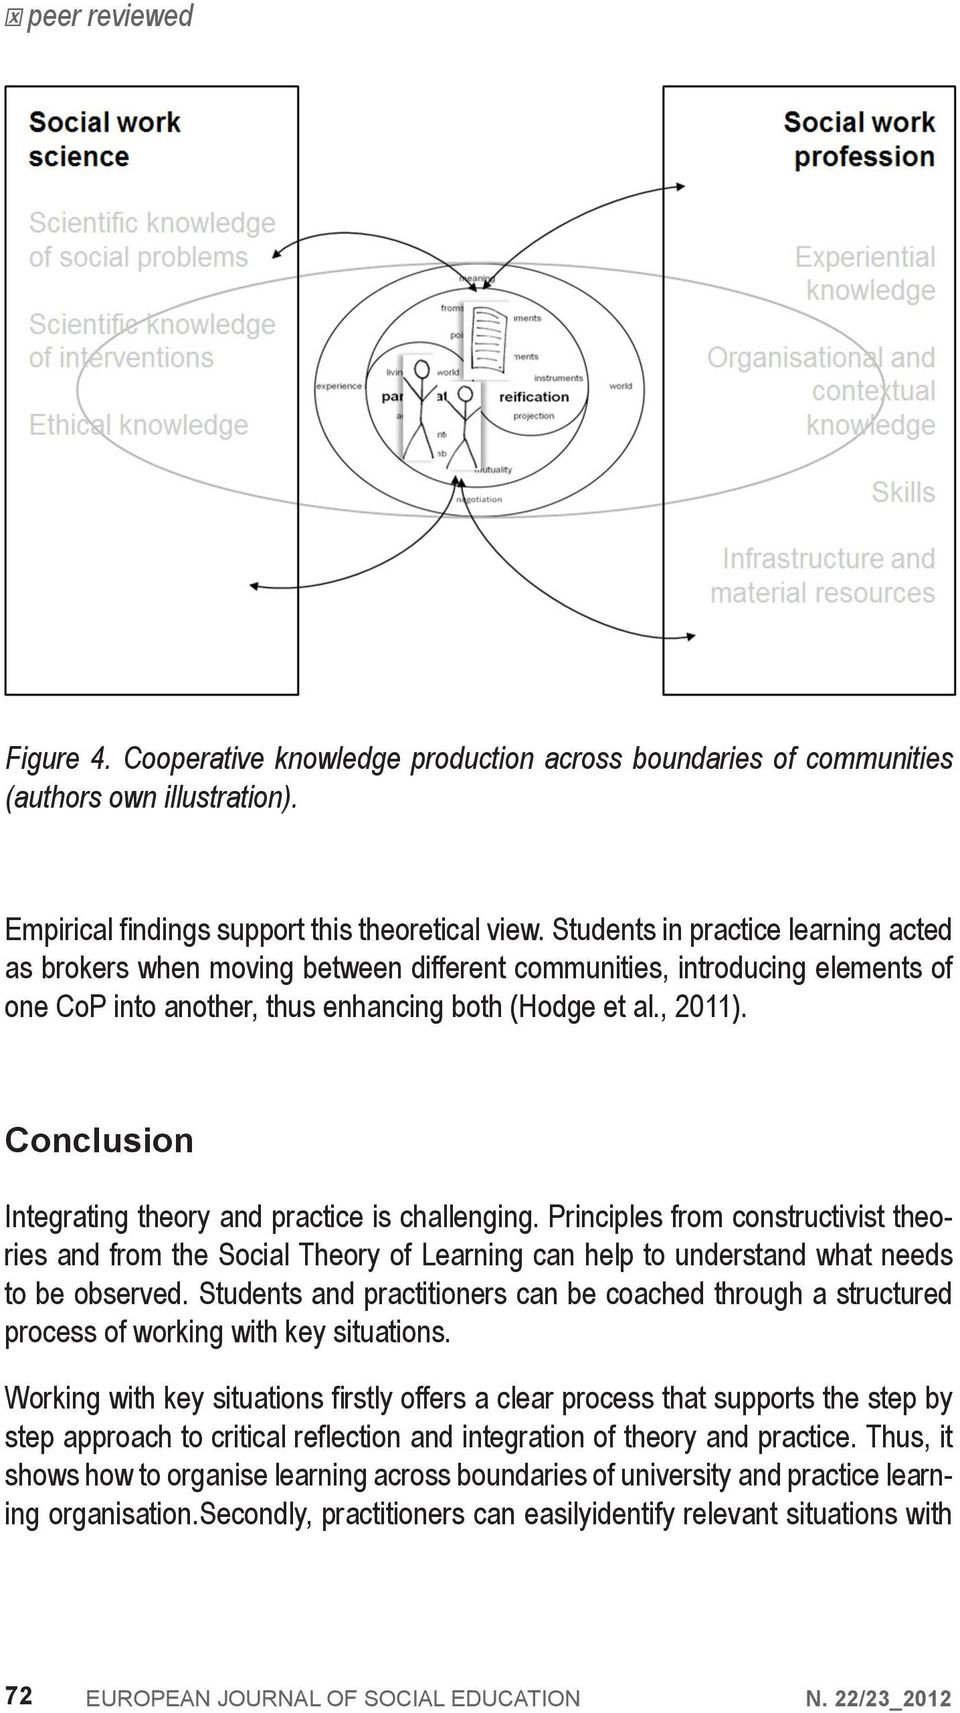 This is illustrated in figure 4: peer reviewed Figure 4. Cooperative knowledge production across boundaries of communities (authors own illustration). Empirical findings support this theoretical view.